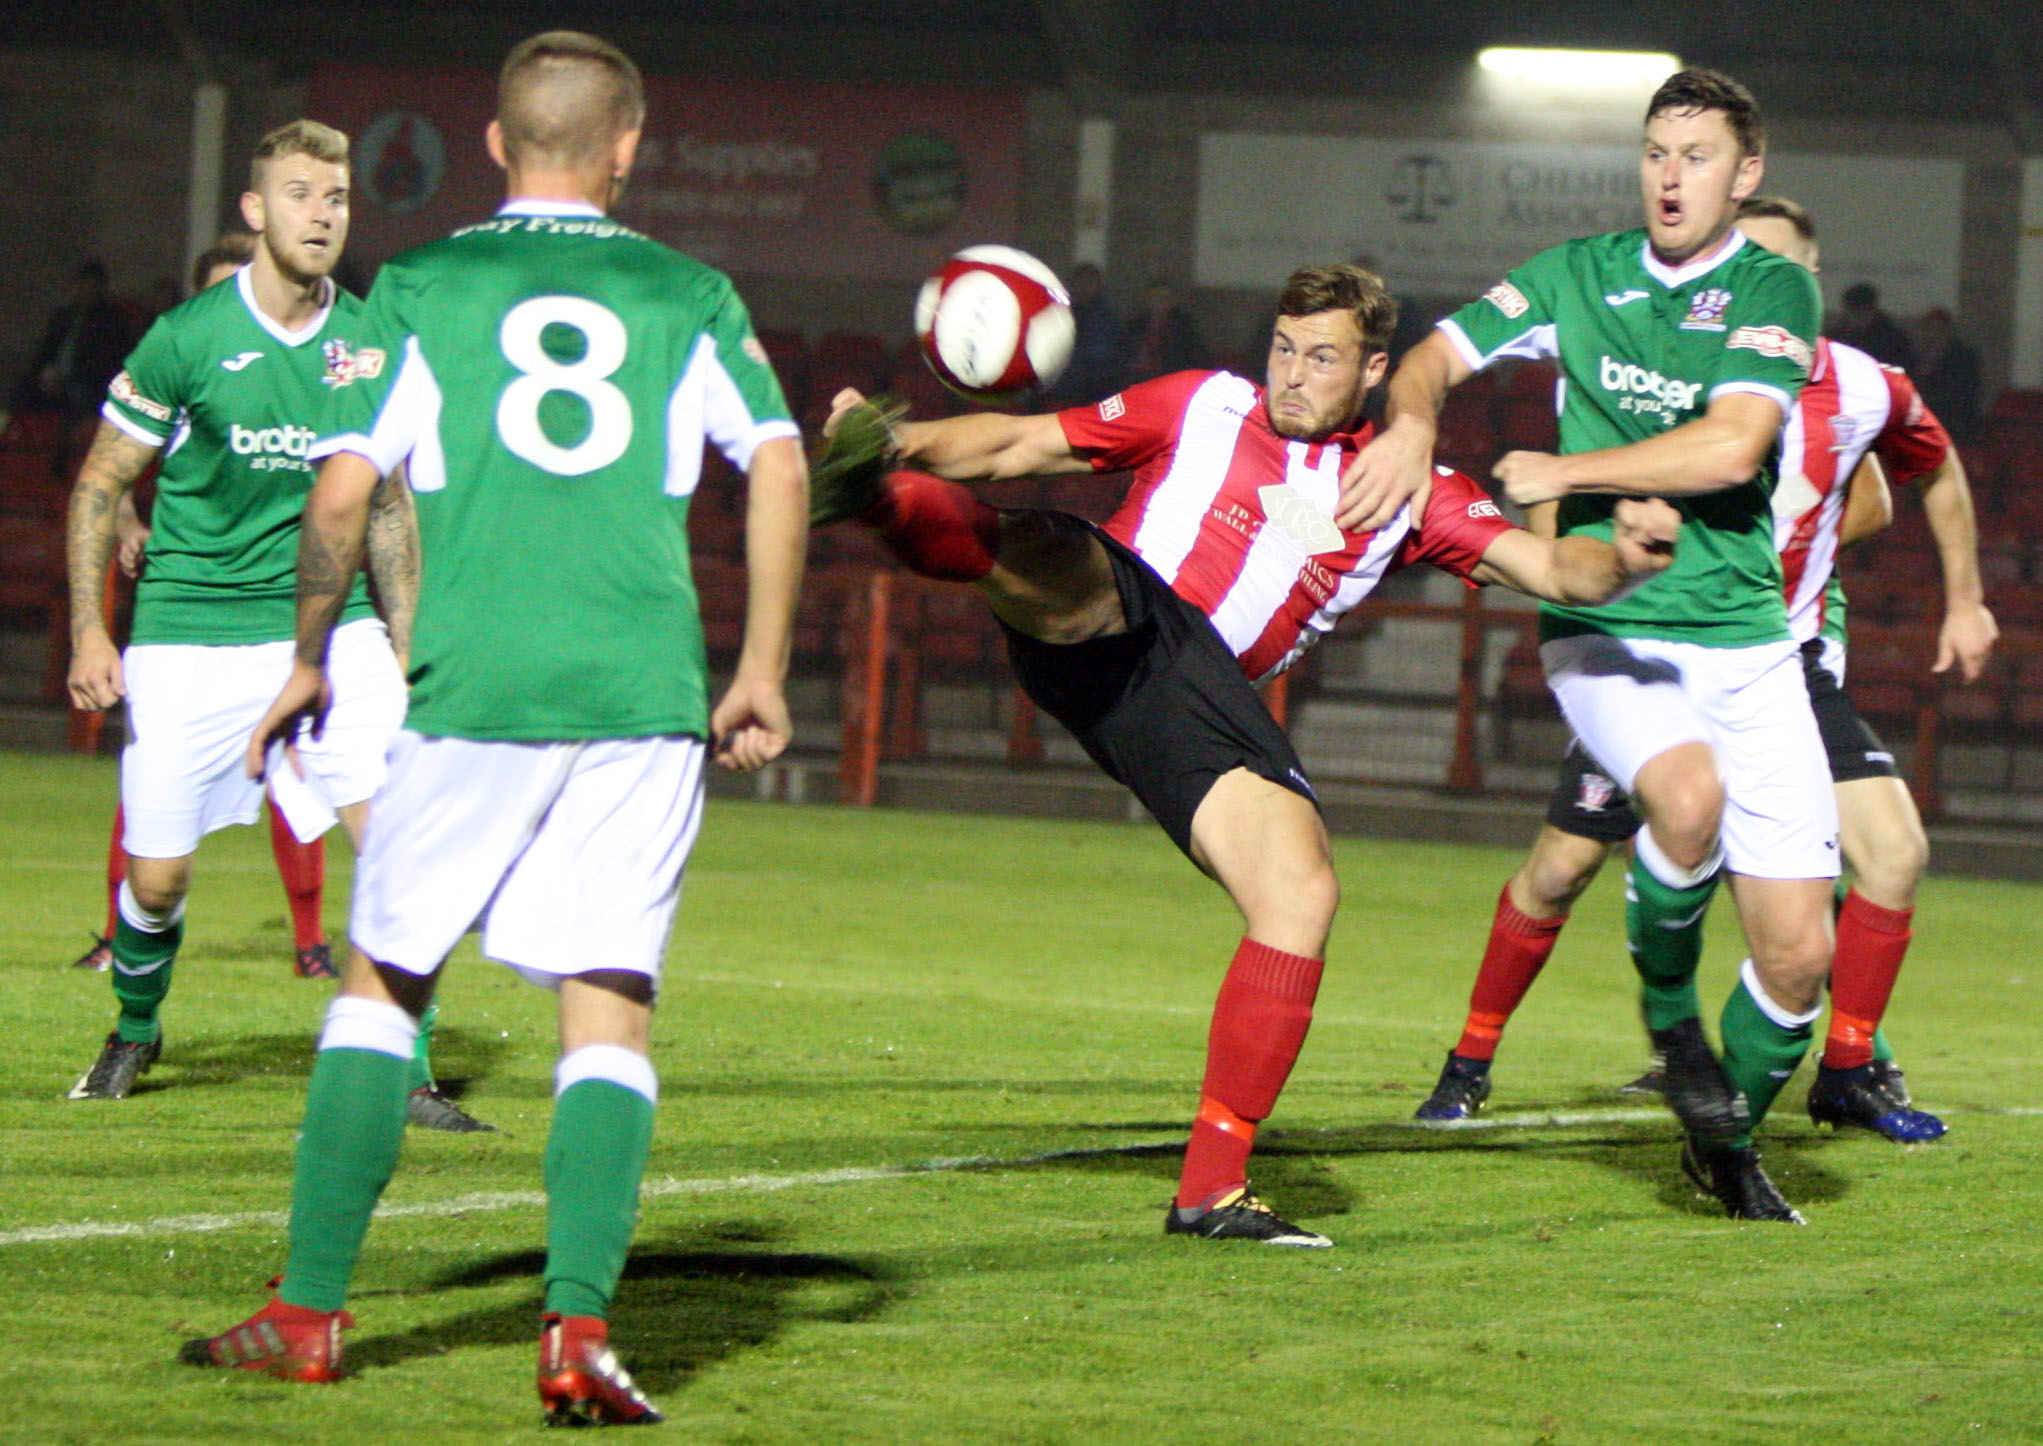 Will Jones and his fellow Witton Albion attackers hope to end a six-hour spell without scoring when Workington arrive tonight. Picture: Keith Clayton